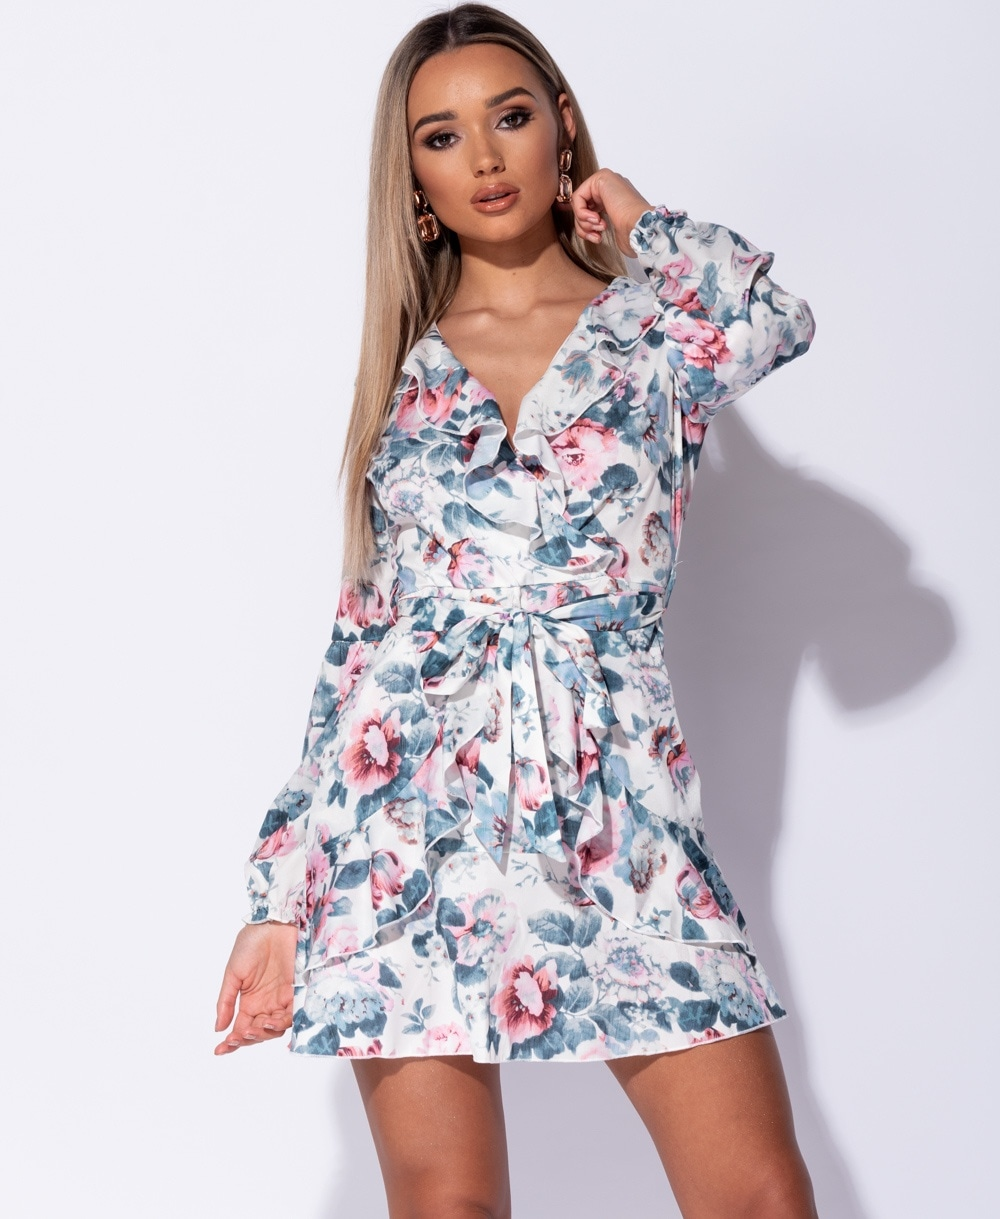 e3458f5660711 Floral Frill Detail Puff Sleeve Self Belt Mini Dress - Clothing from ...